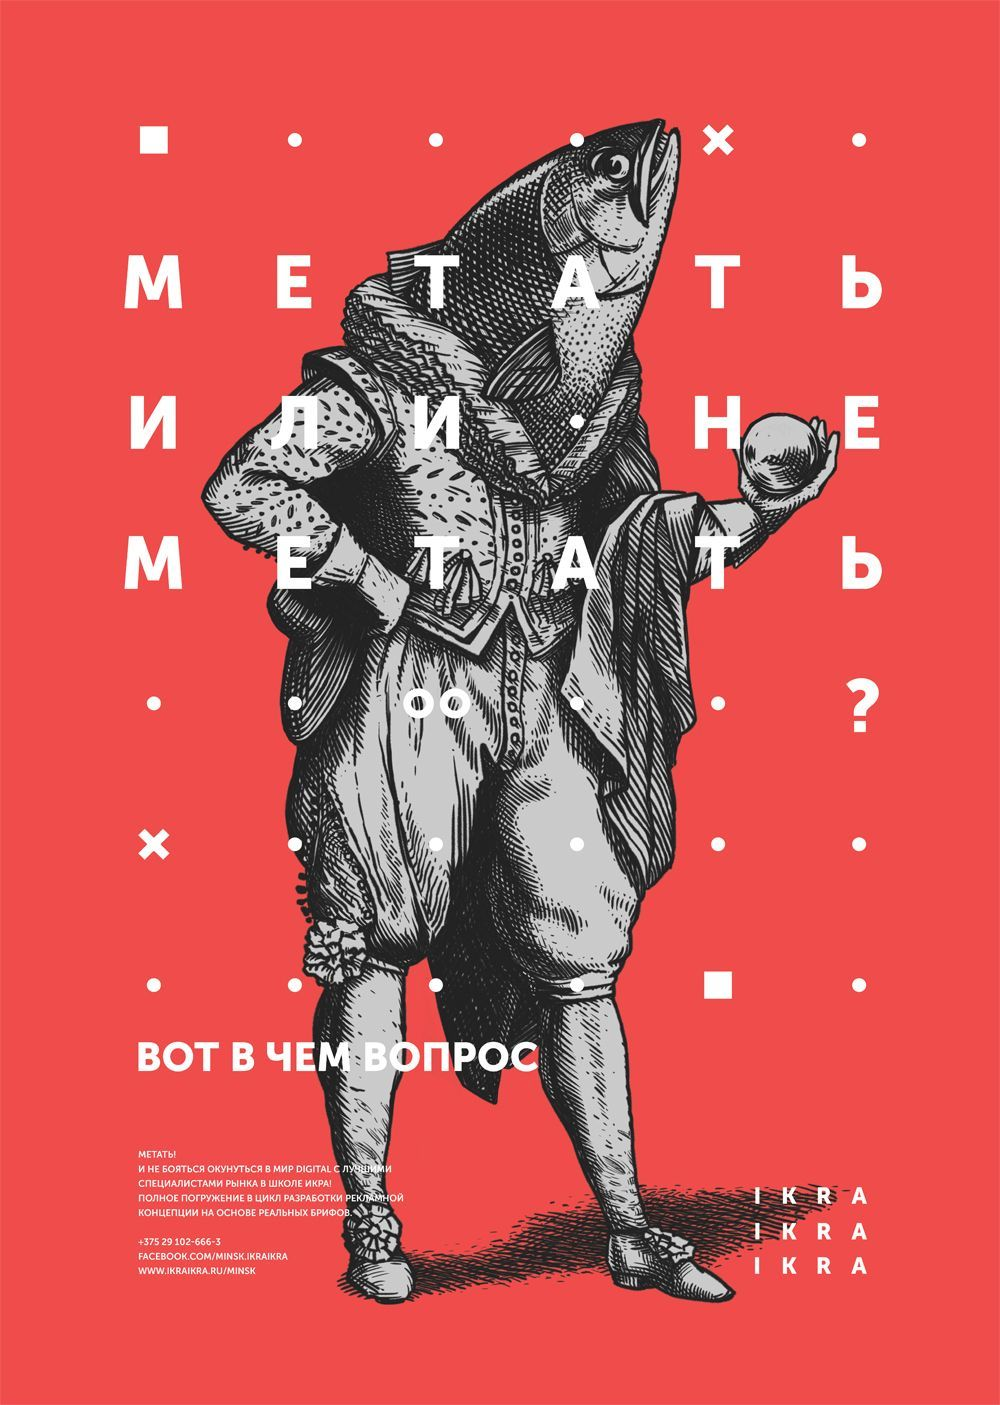 Graphic Design : IKRA Posters Shakespeare by Lesha Limonov (Daily Design Inspiration) Daily Design Inspiration | IKRA \u2022 Posters \u2022 Shakespeare by Lesha Limonov | Yellow Design Studio Today's daily design #graphicprints